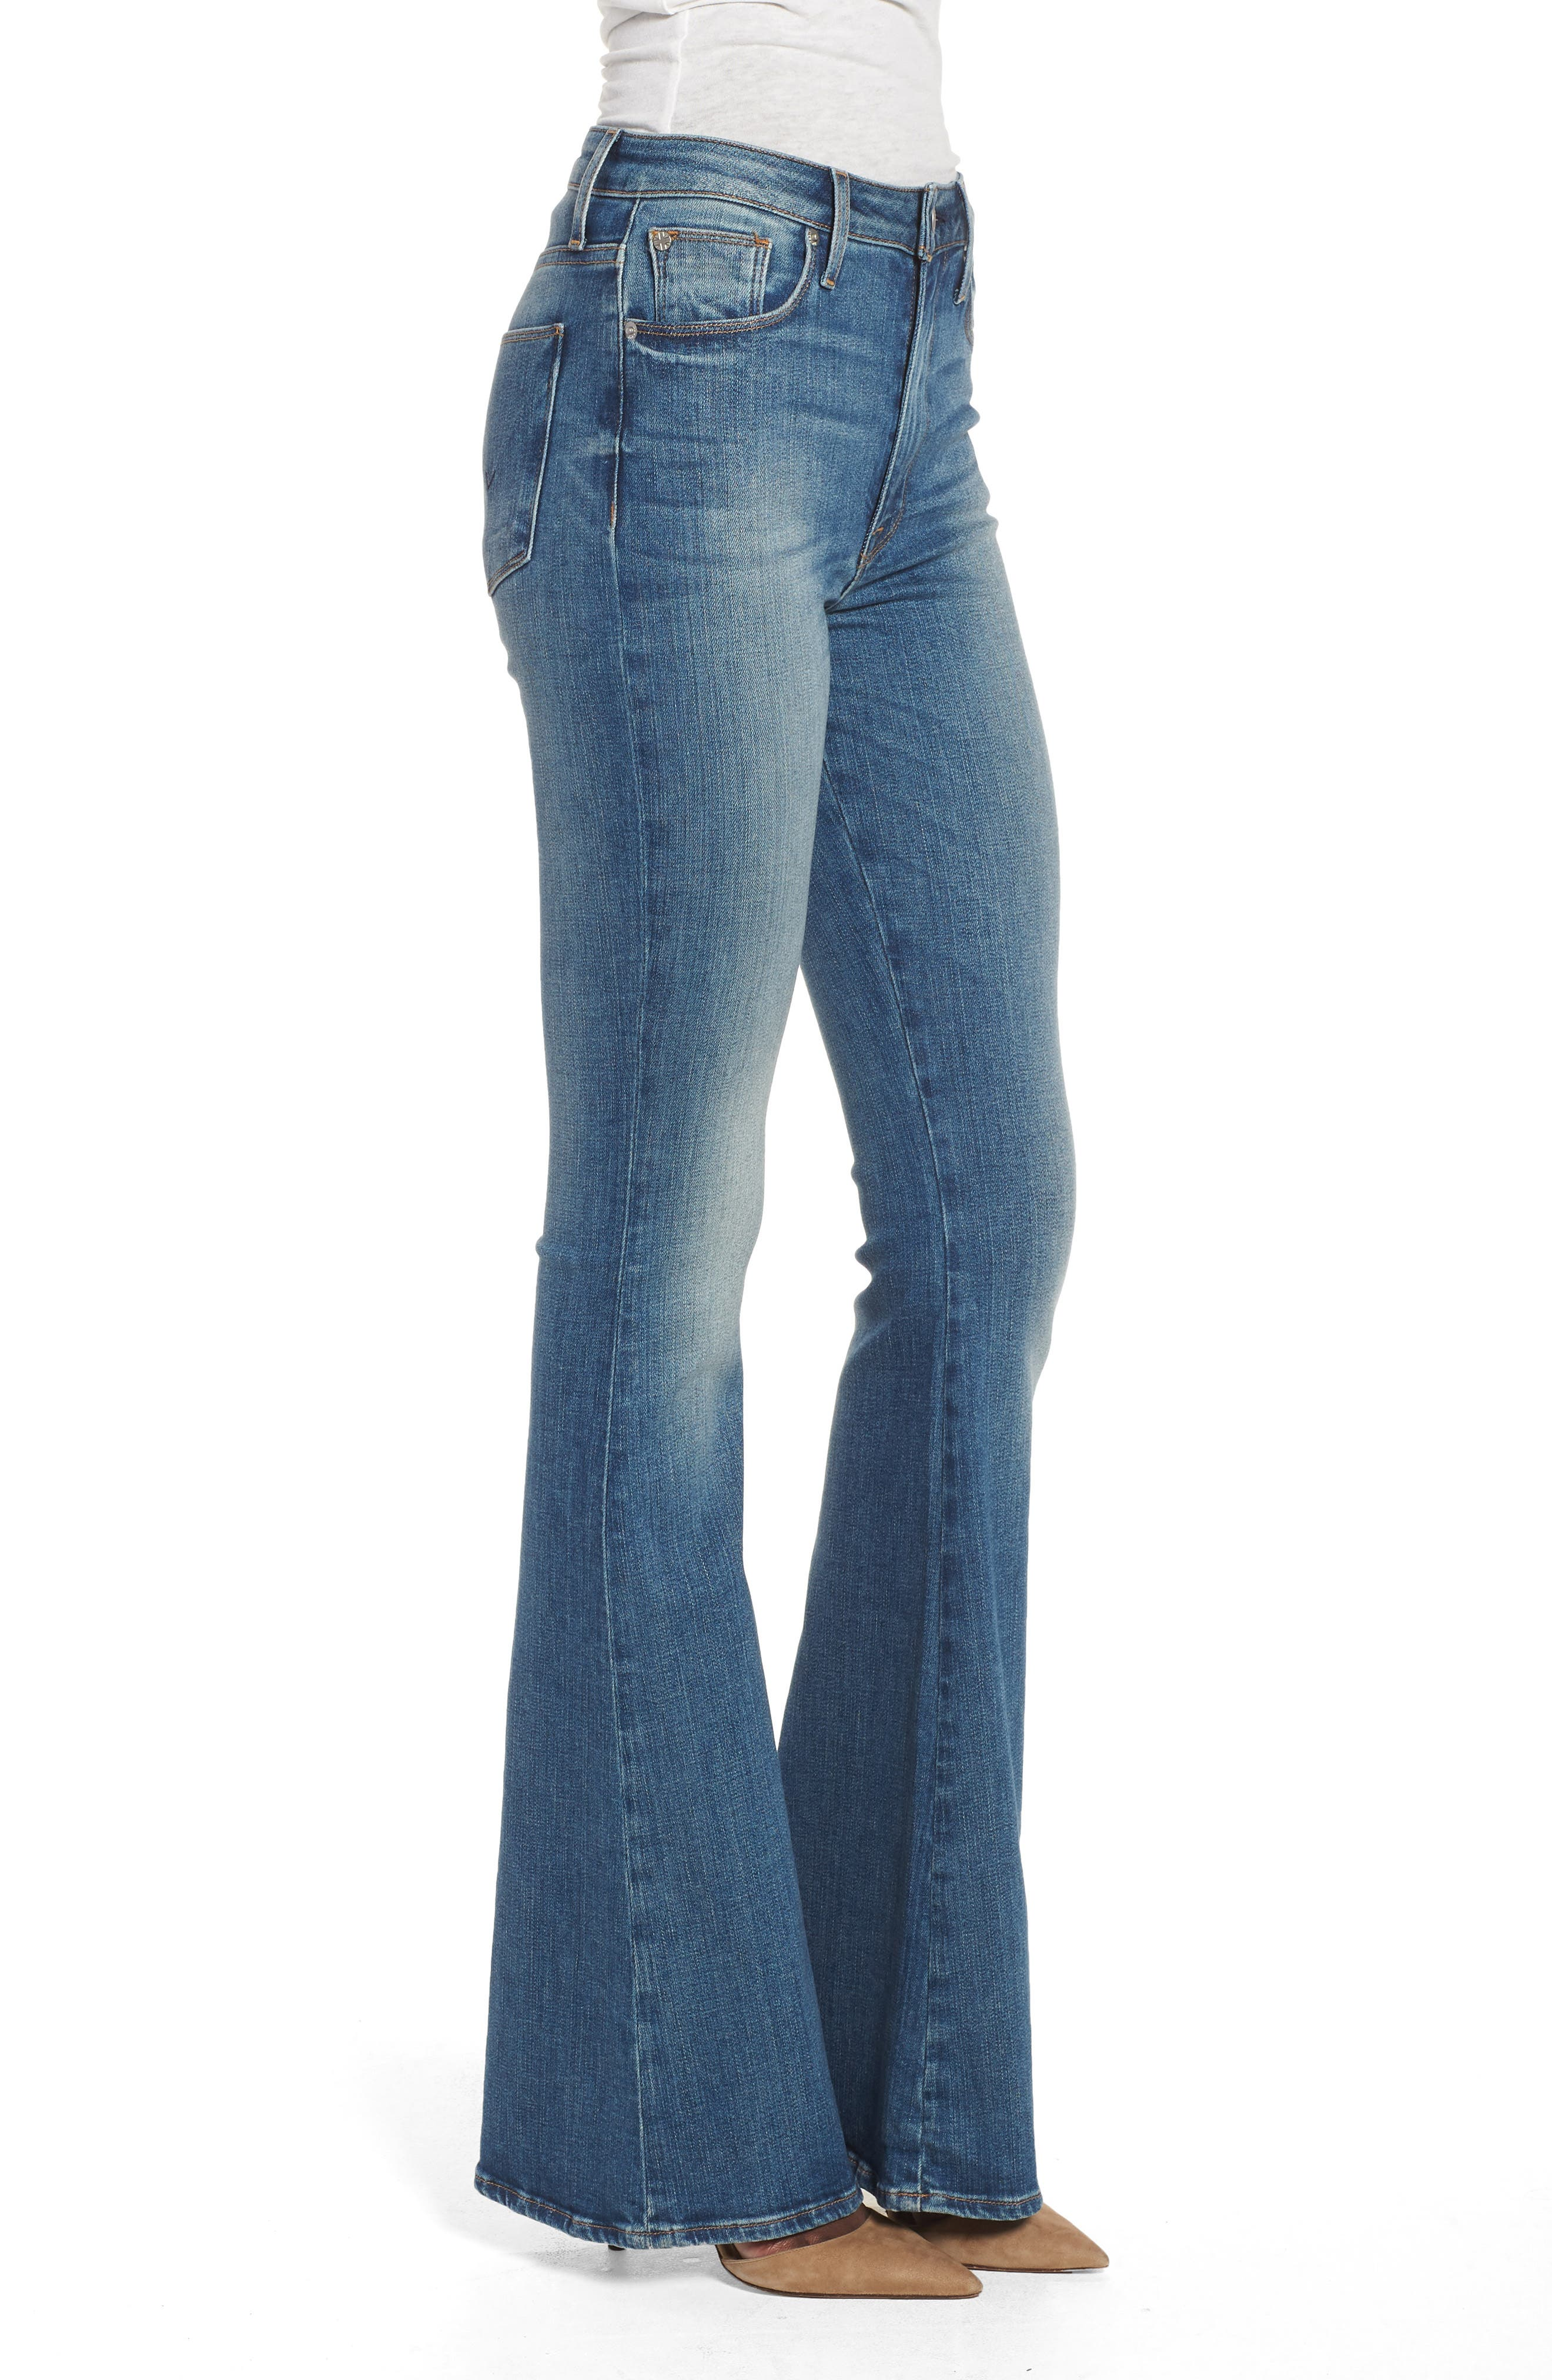 Holly High Waist Flare Jeans,                             Alternate thumbnail 2, color,                             First Date